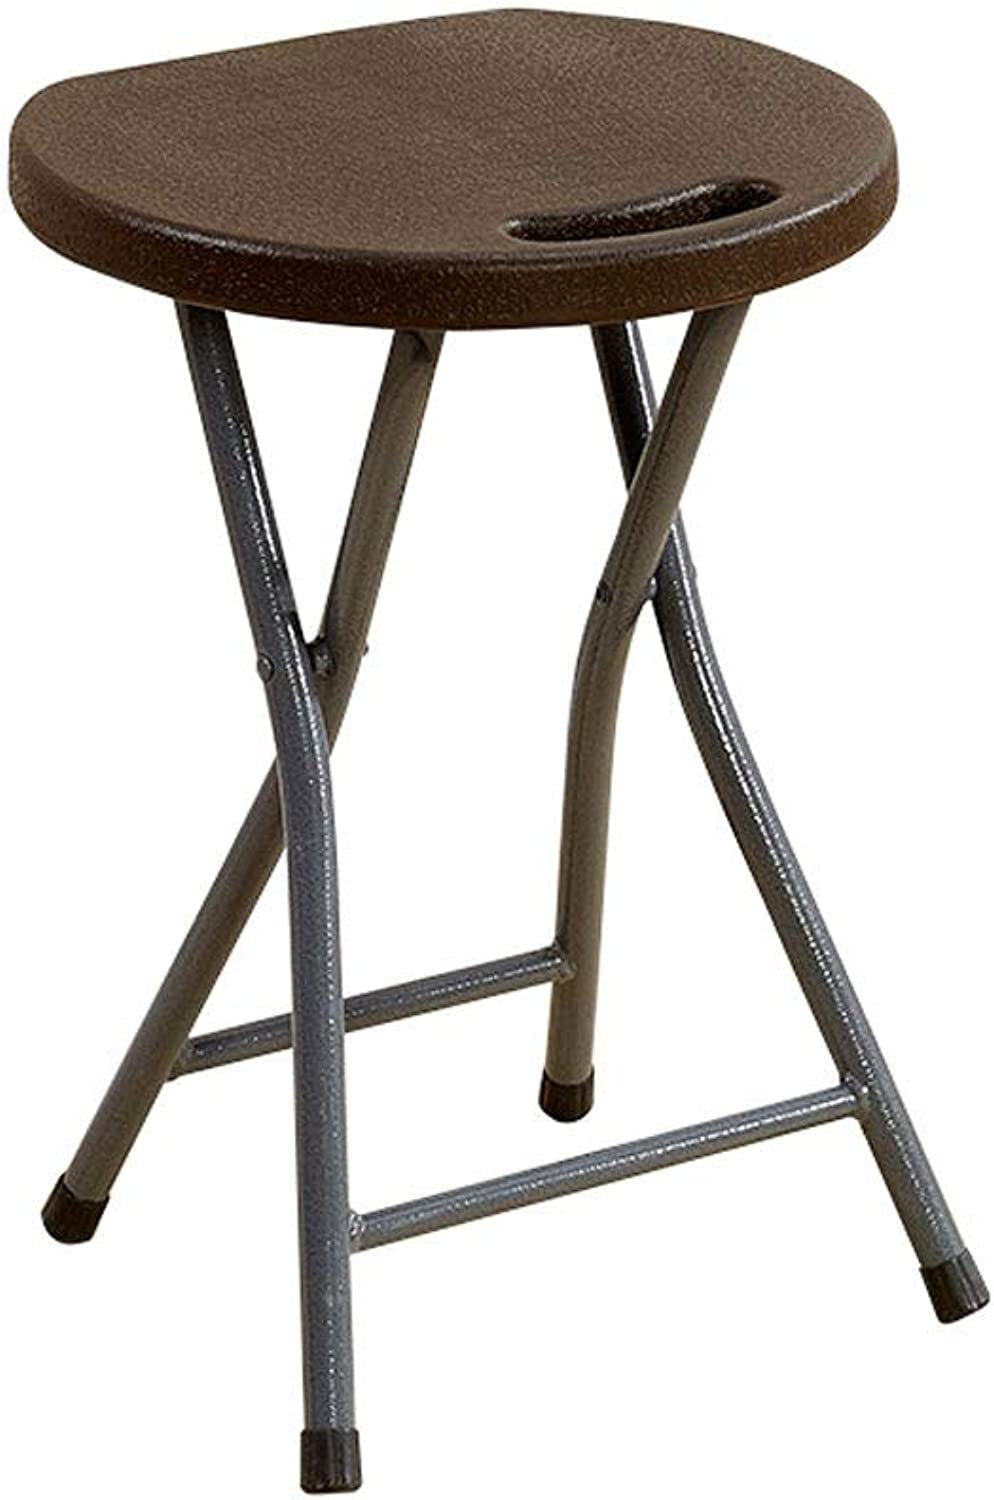 A+ Household Folding Chair,Outdoor Plastic Folding Stool,Portable Dormitory Stool,Thickened Stool Home Small Bench - 32cmX29cmX46cm (color   Brown)